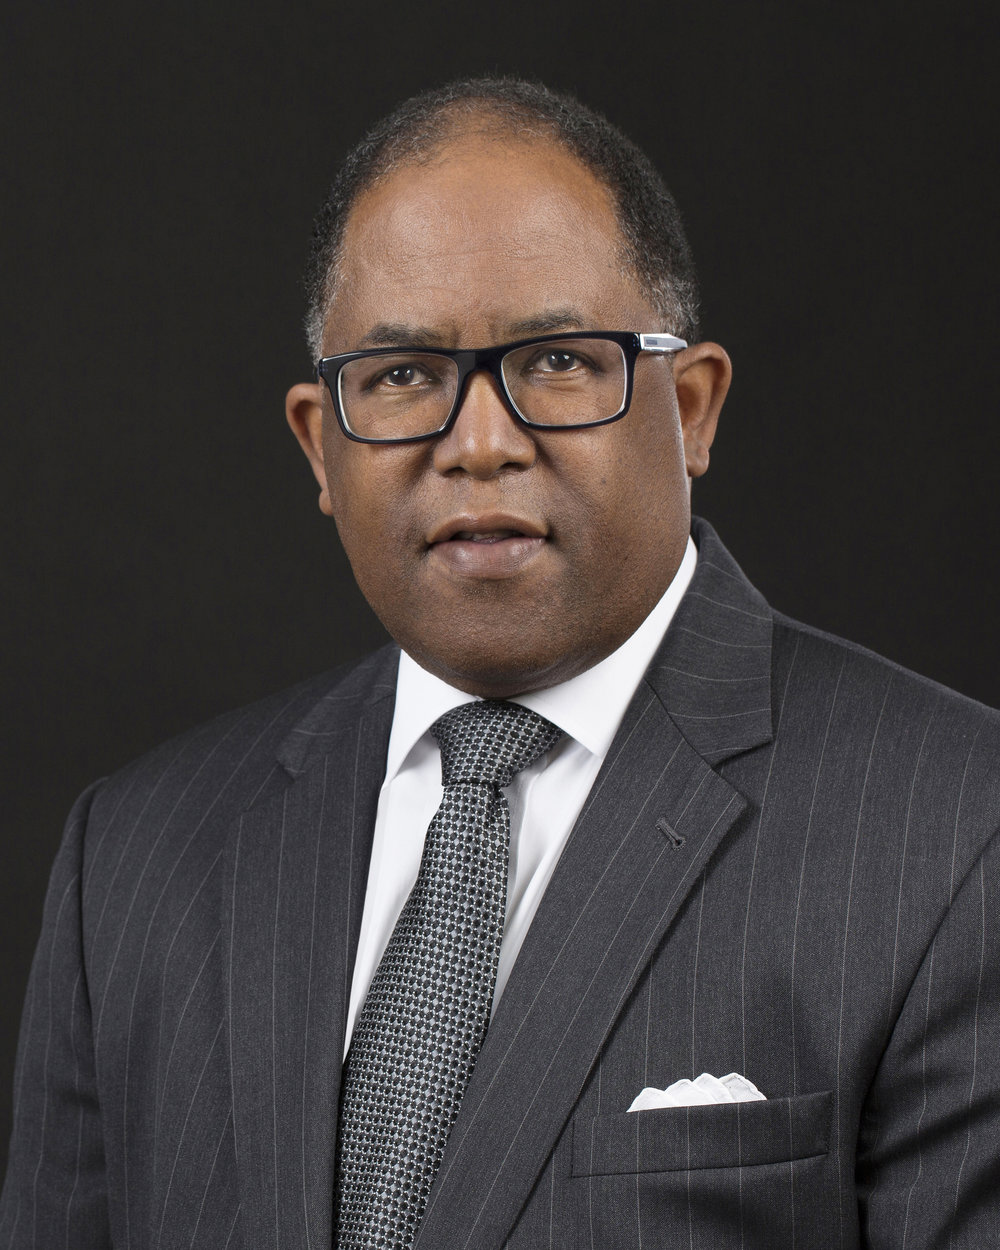 LA Family Housing is pleased to honor LA County Supervisor Mark Ridley-Thomas with the RCB | City National Bank Inspiration Award for his leadership and county-wide initiative to end homelessness in Los Angeles.